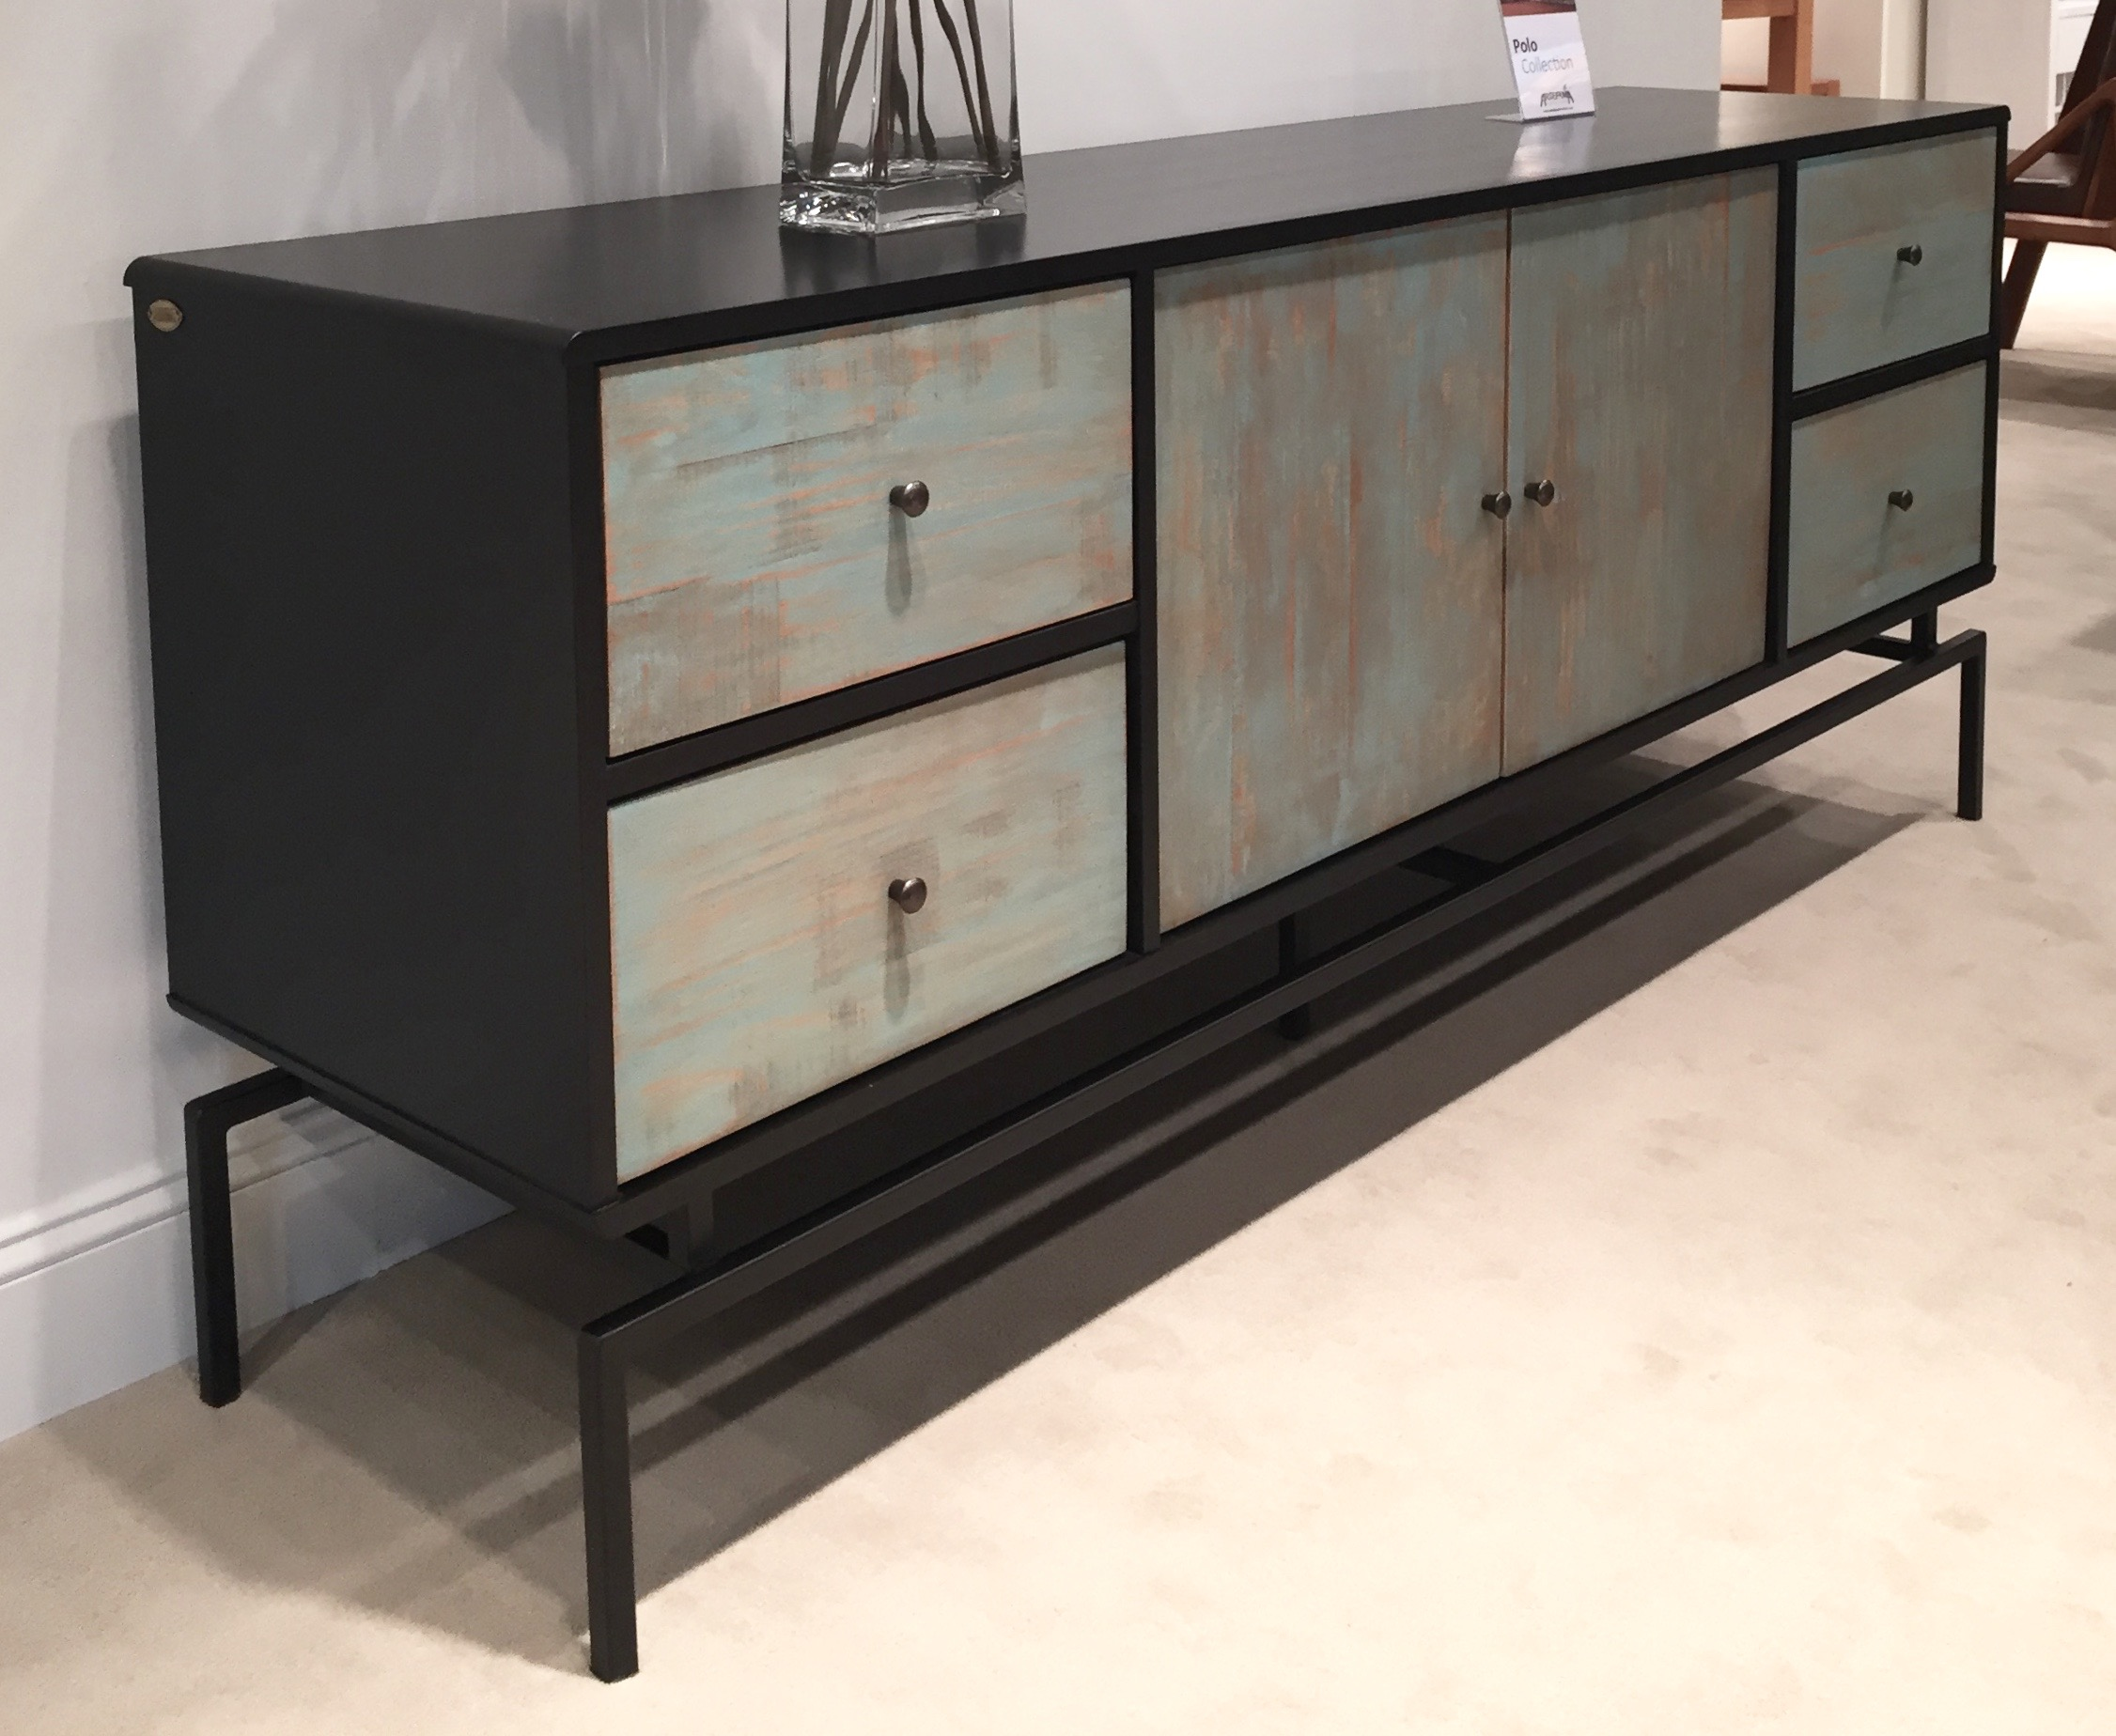 I'd spec this piece in all black instead of that contrasting front — but at a trade show you've got to take every advantage to show what your skilled workers can do. I love a case piece that's light on its feet. The base totally makes this one.